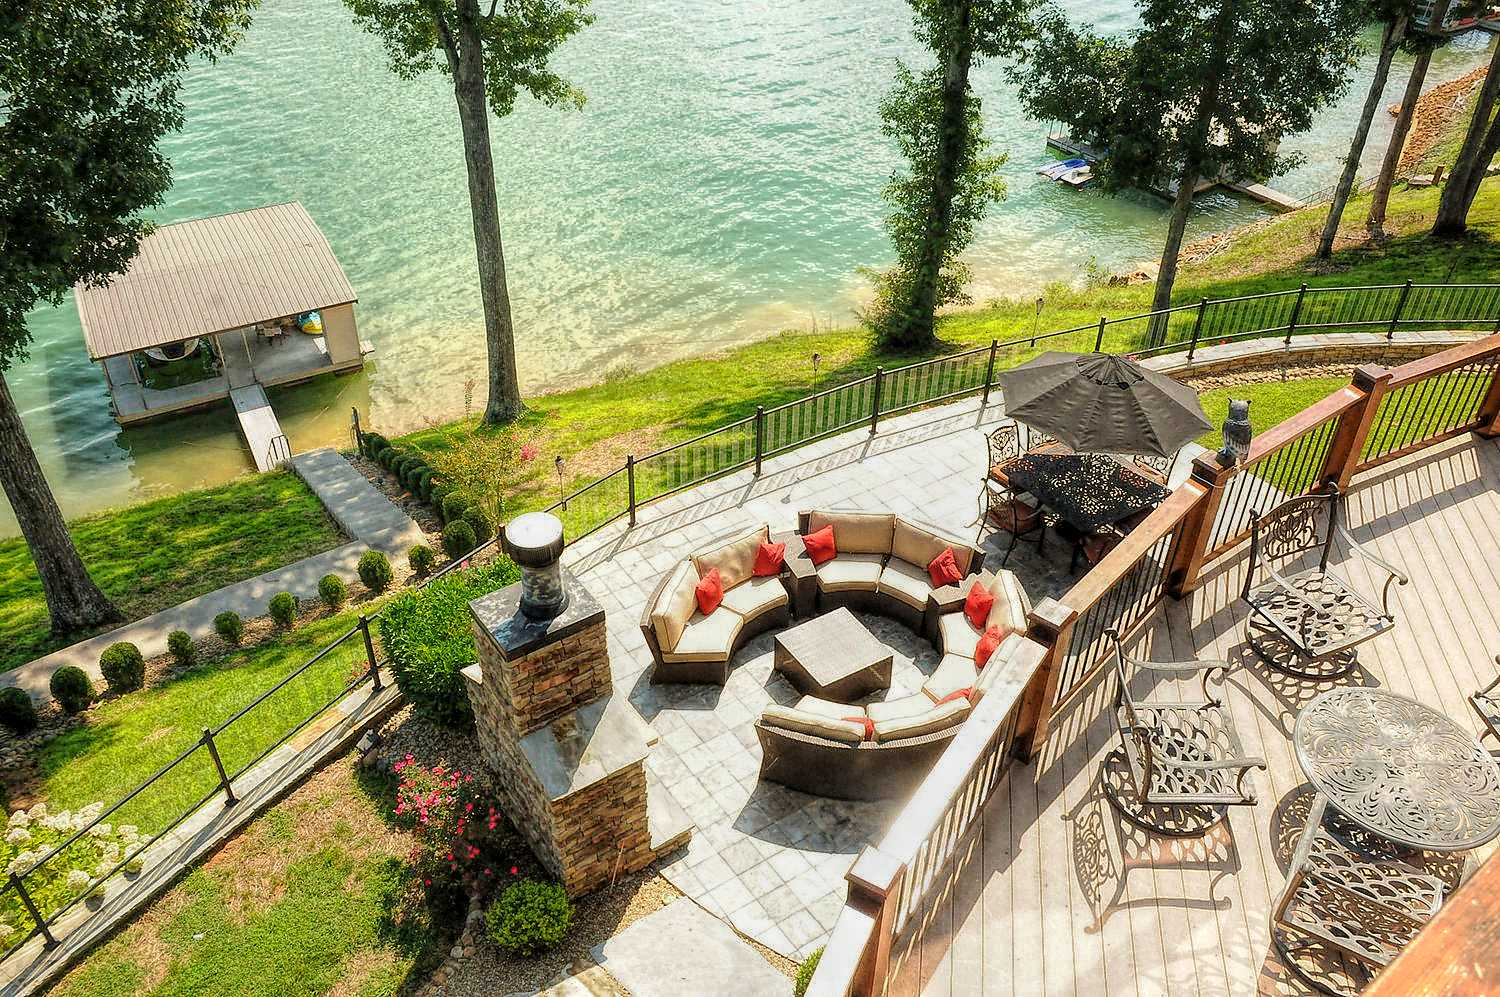 Grand view from the Master Bedroom balcony offering views of the stone fireplace patio area and boat dock